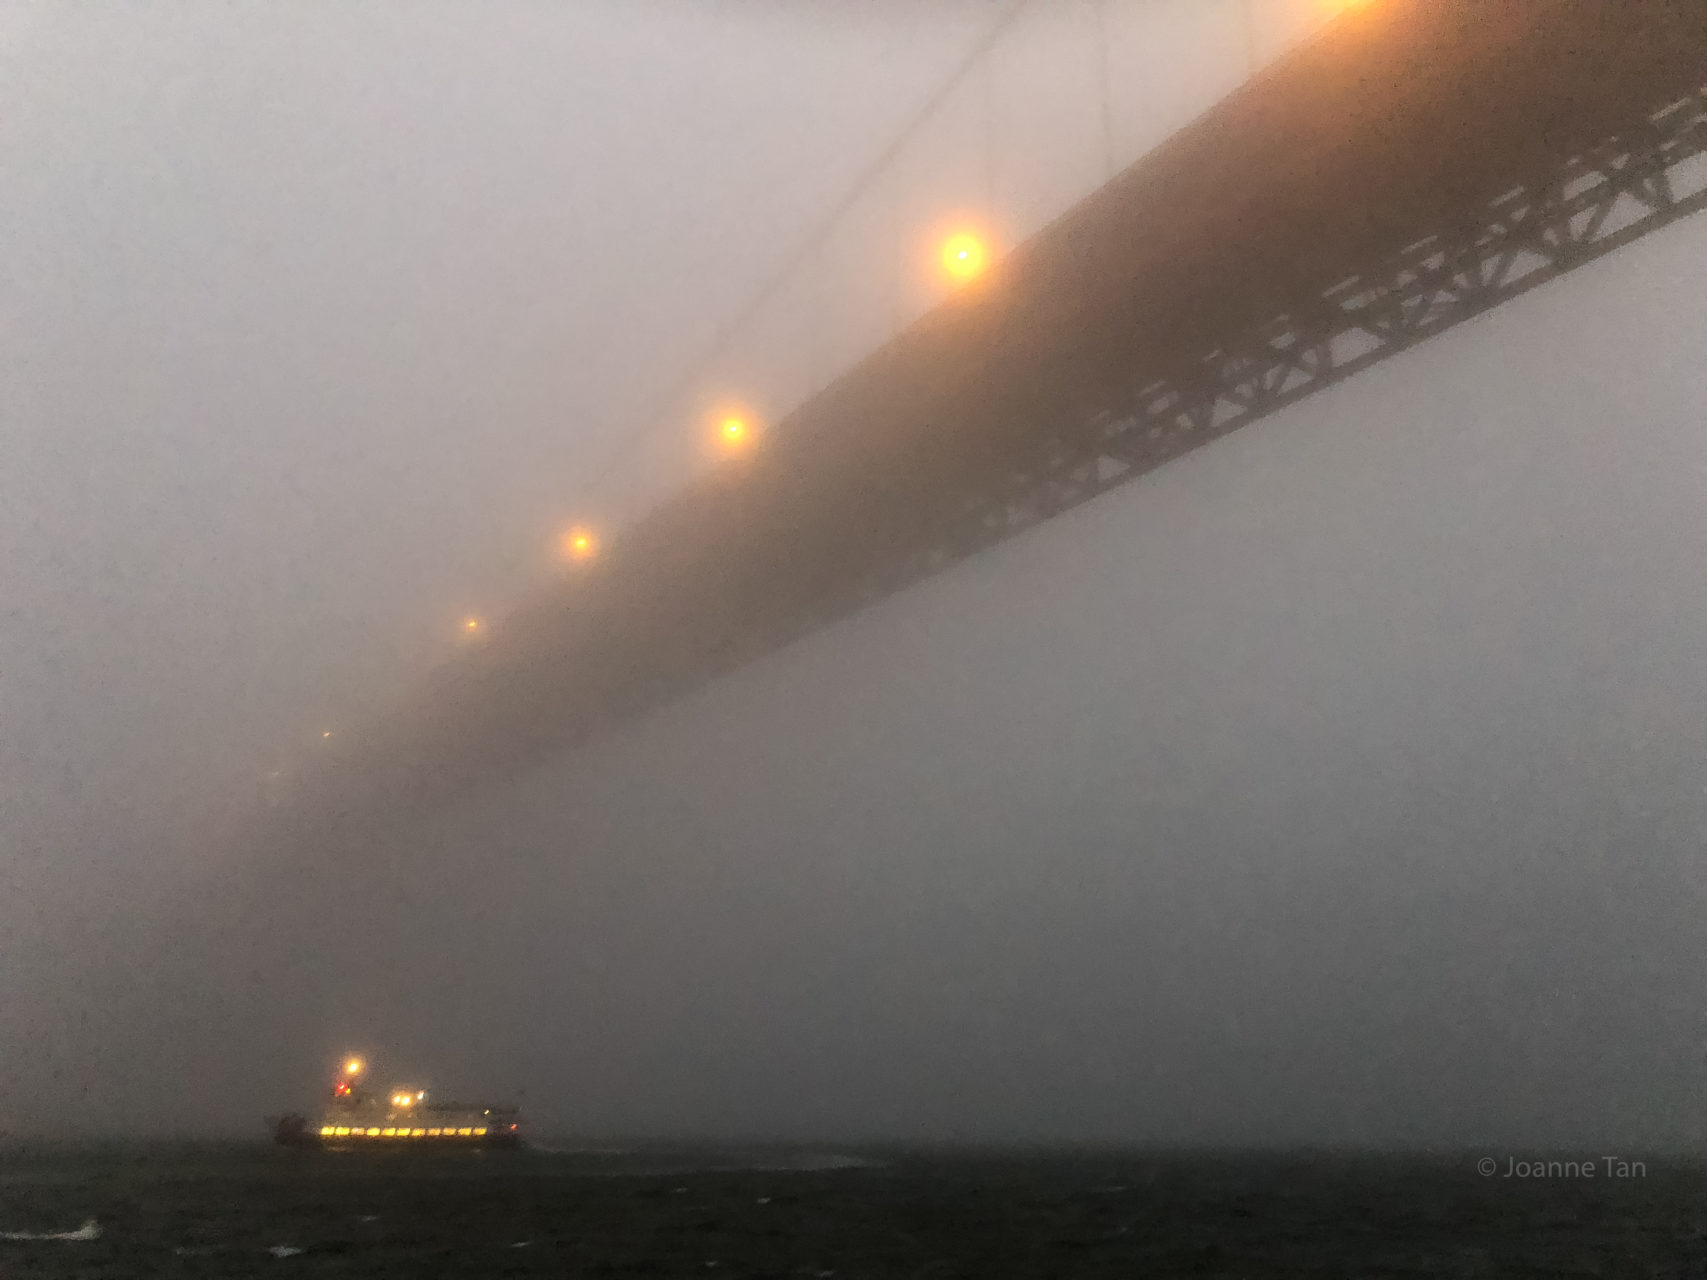 Golden Gate Bridge & boat in Mist 1_by Joanne Tan_Iphone10_-2417